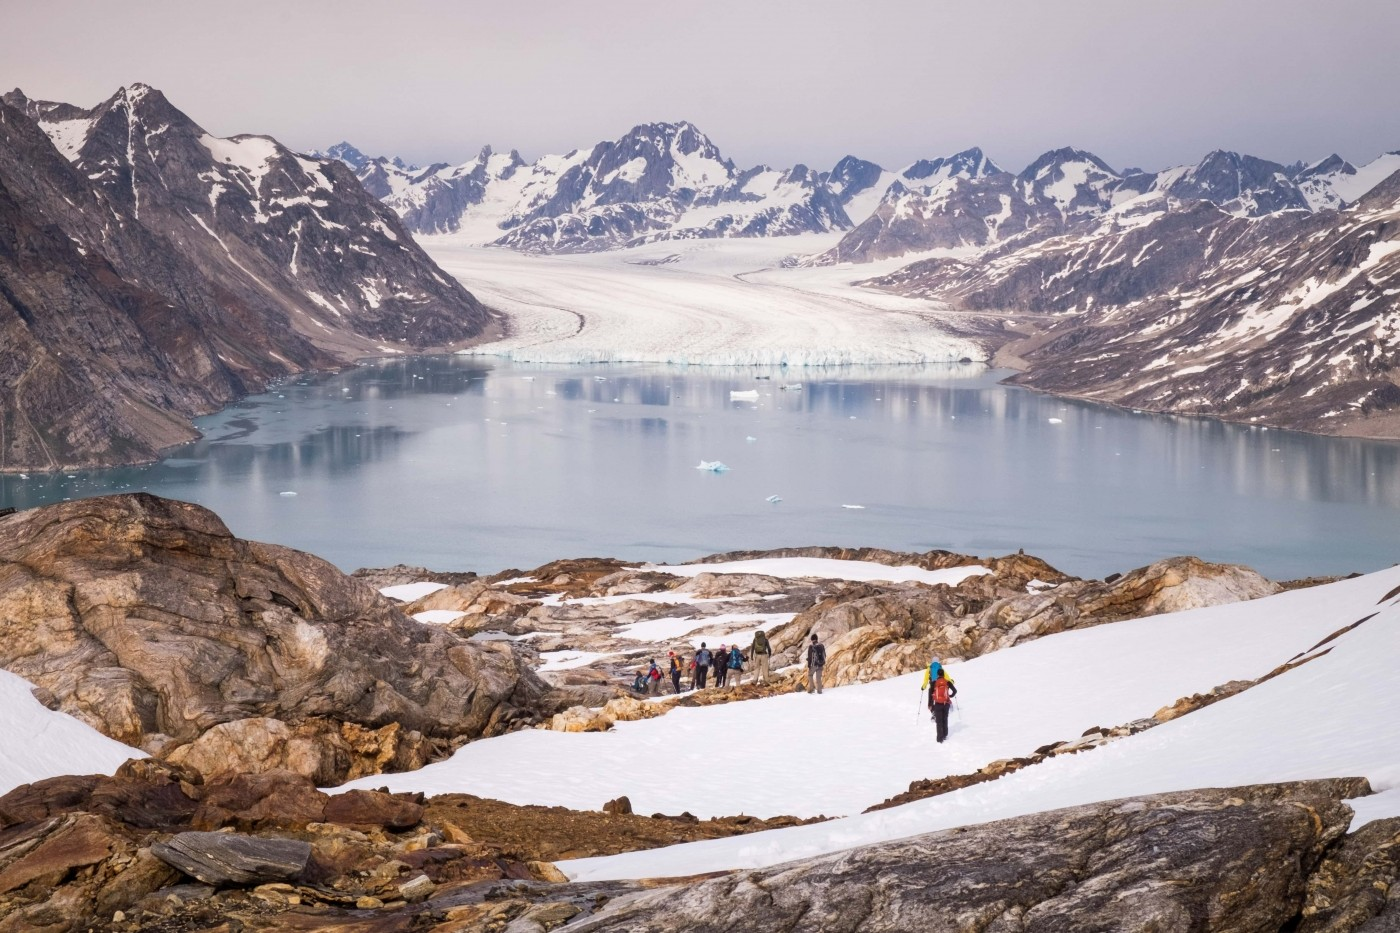 East Tasiilaq summer knud-rasmussen glacier from mountain view with hikers. Photo by Guide to Greenland